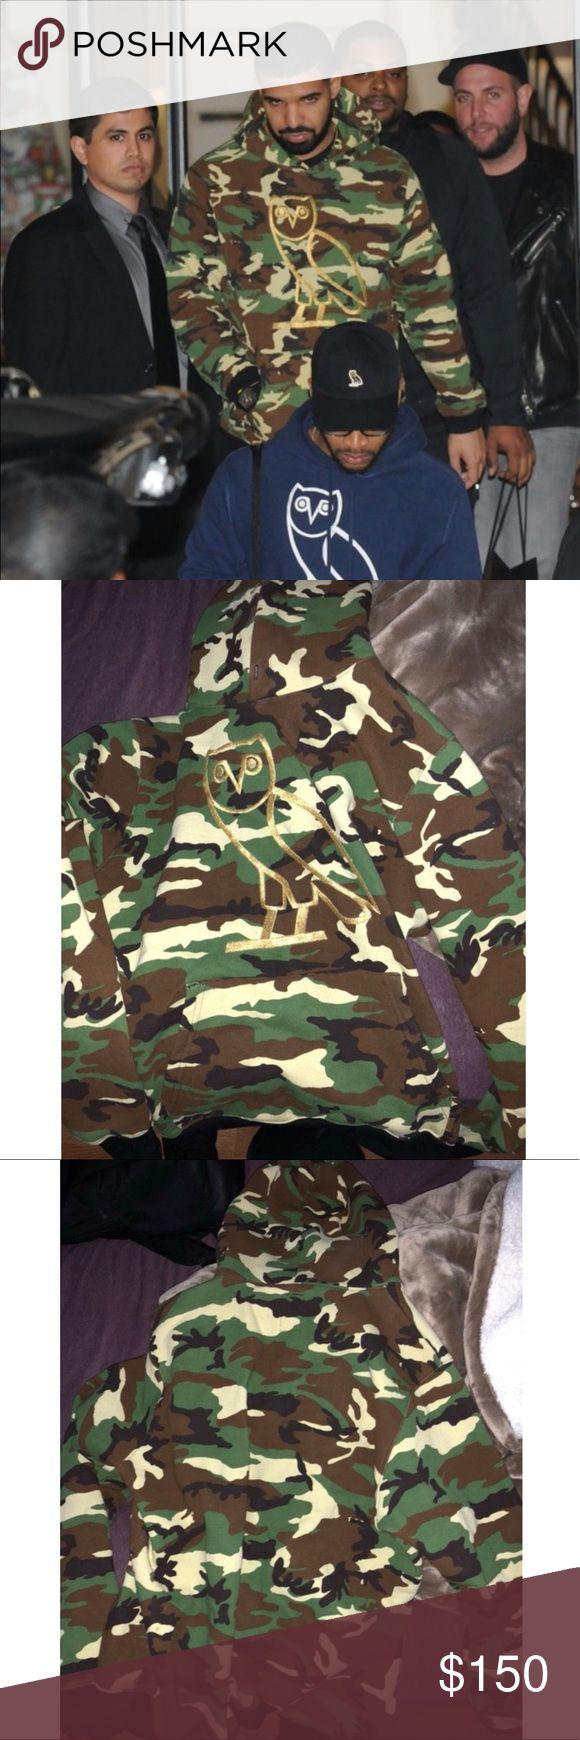 OVO CAMO SWEATER (LIMITED EDITION) If you're a drake fan and you didn't get this LIMITED EDITION hoodie then here you go. This hoodie is loud but it'll turn a bum fit into a fit that Drake would wear. This has never been used and is basically brand new. This hoodie would look iconic with Timbs, black ripped jeans and a drake hat. Willing to take other offers October's Very Own Shirts Sweatshirts & Hoodies